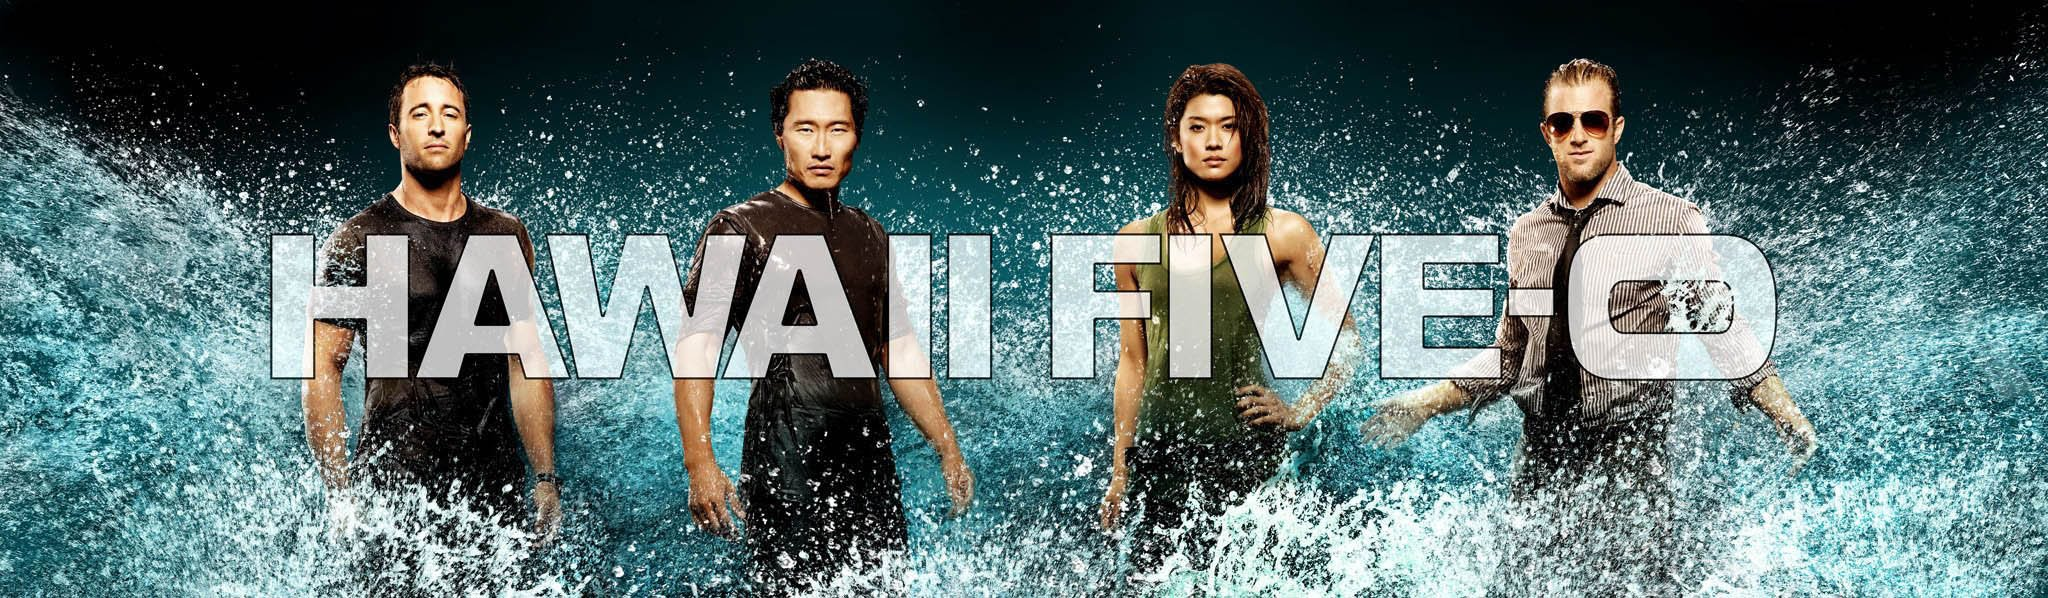 Hawaii Five-0 TV Show